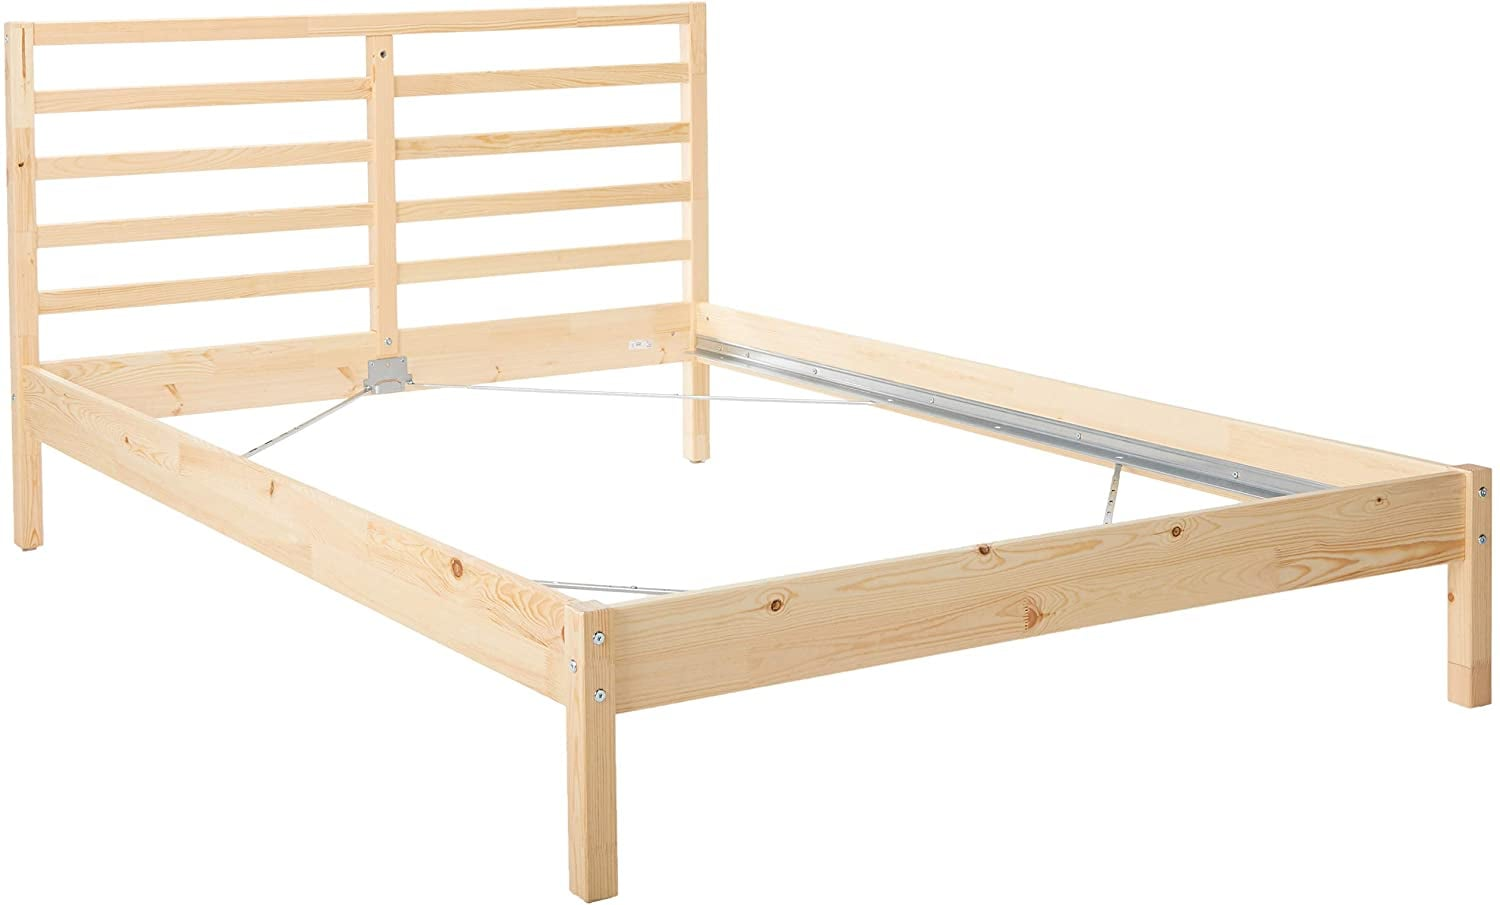 DOUBLE WOODEN BED FRAME £65